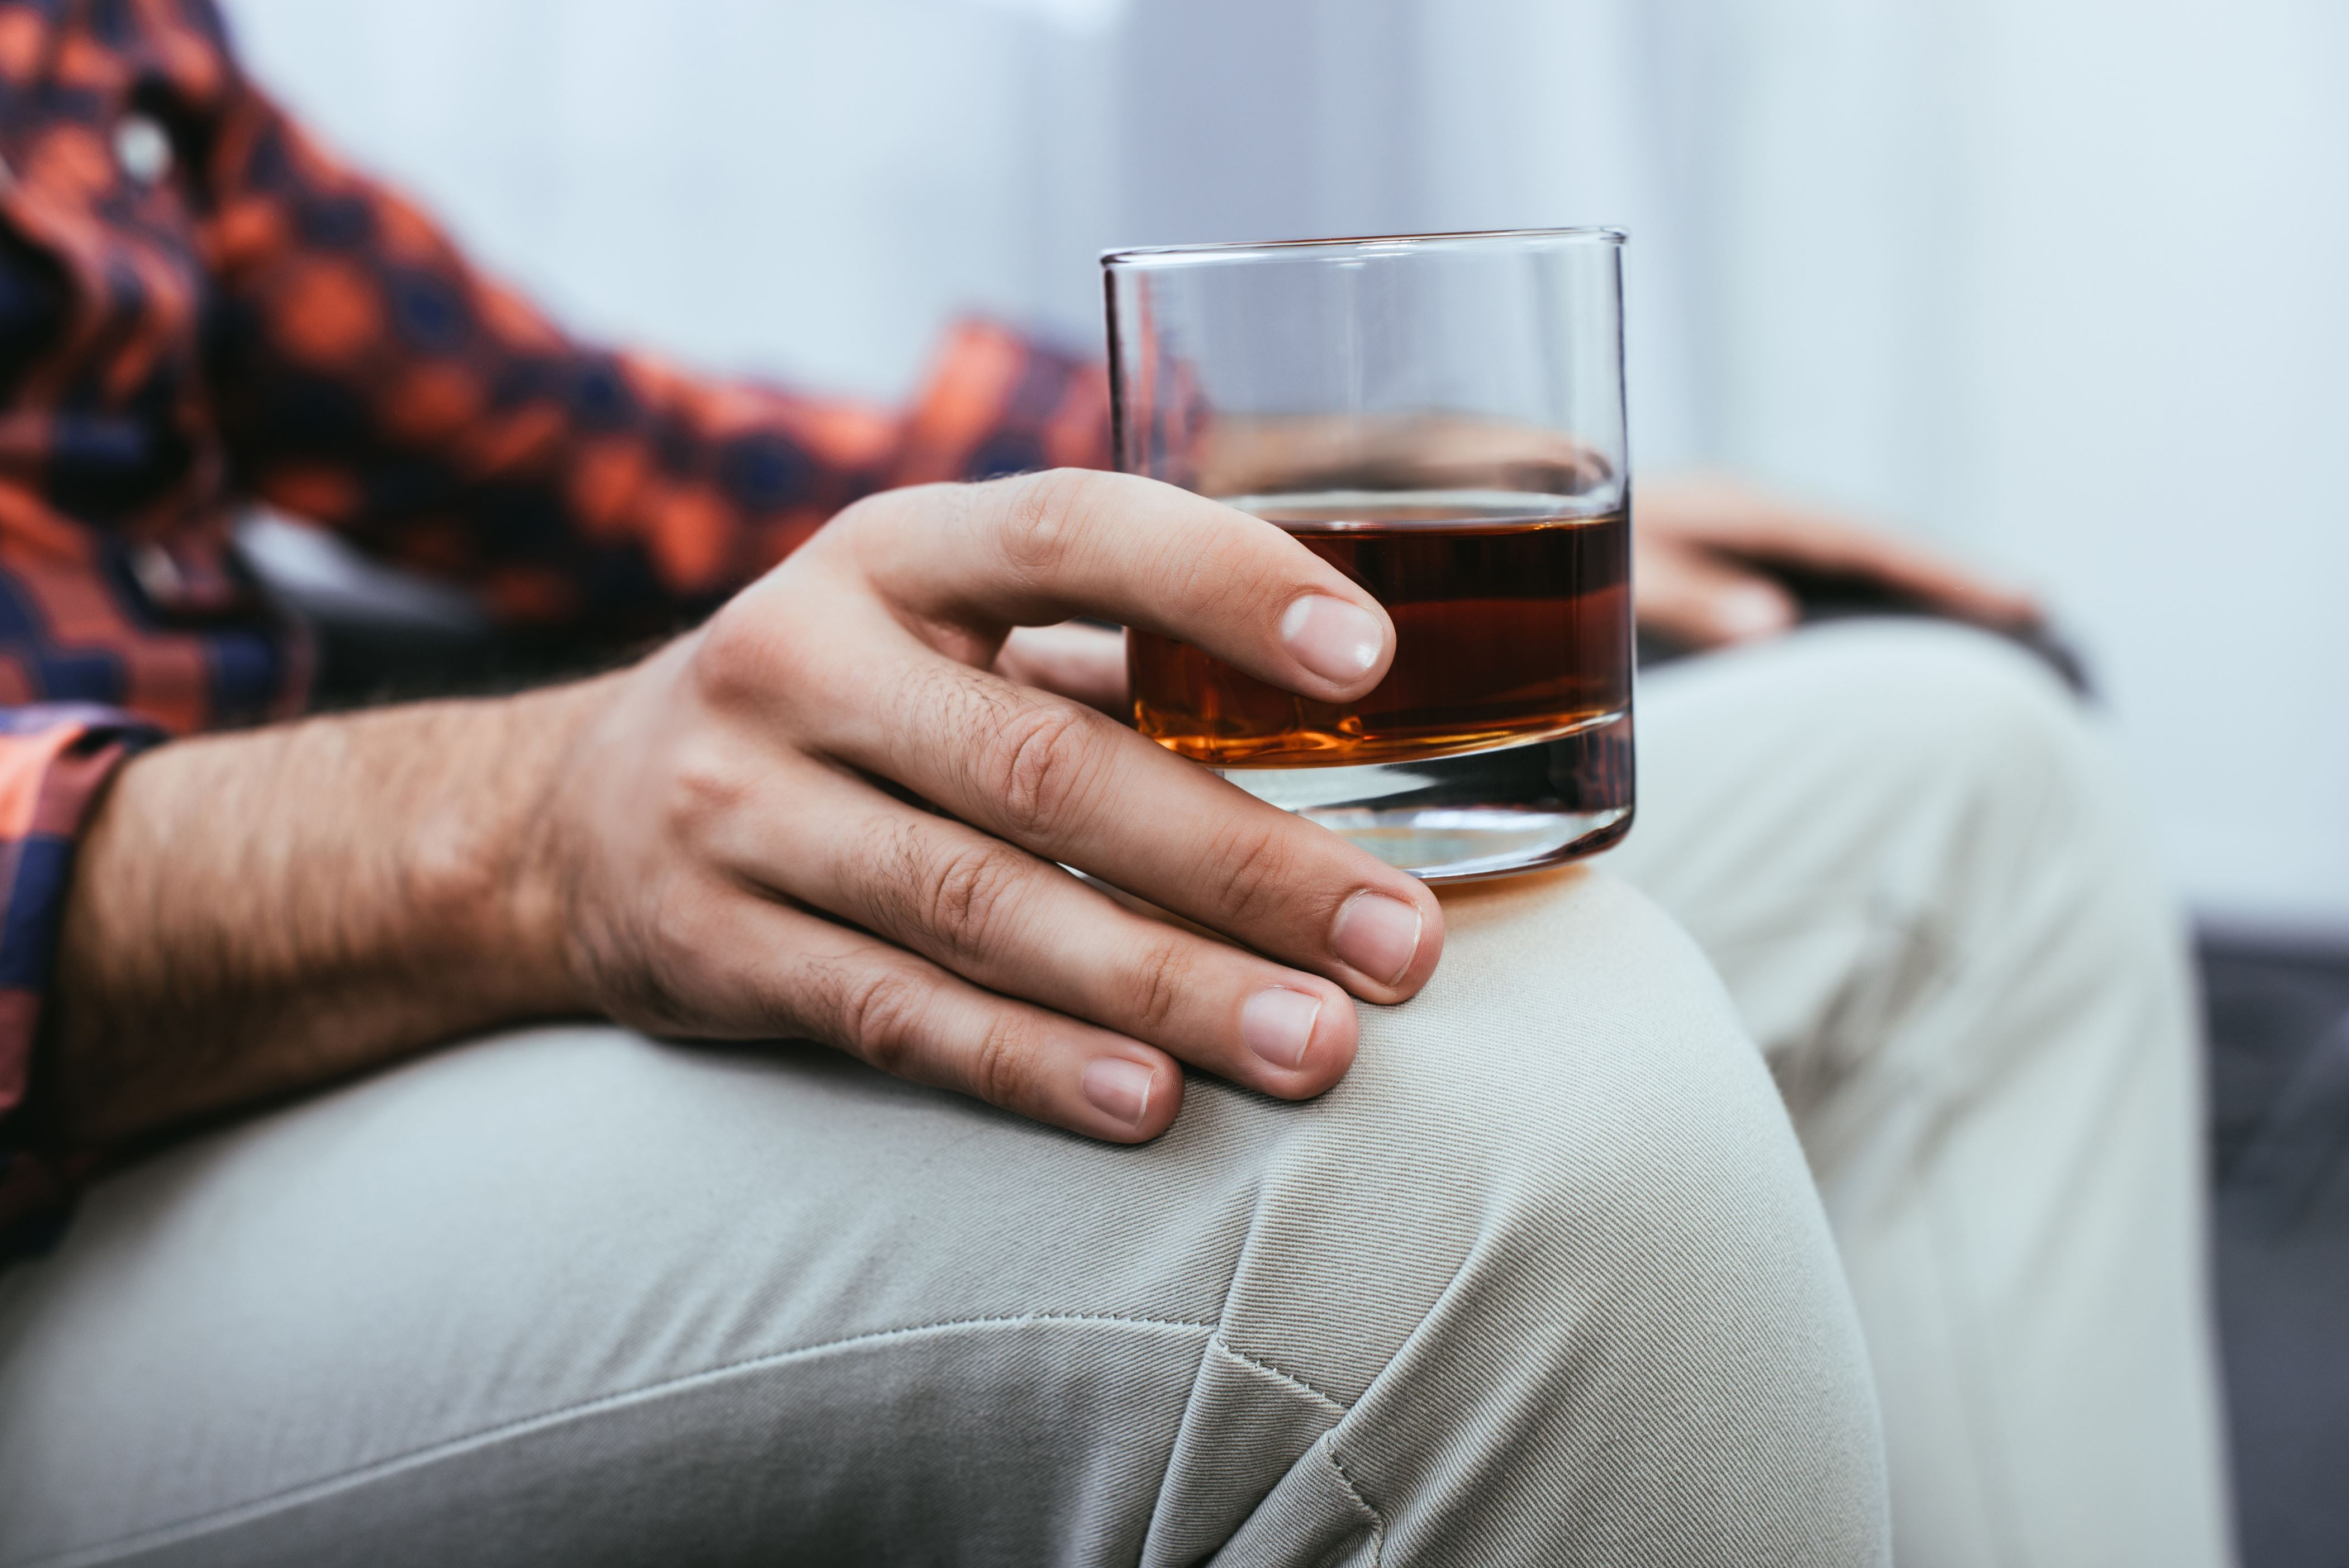 Drinking Alcohol Could Raise Risk of Getting COVID-19, WHO Suggests